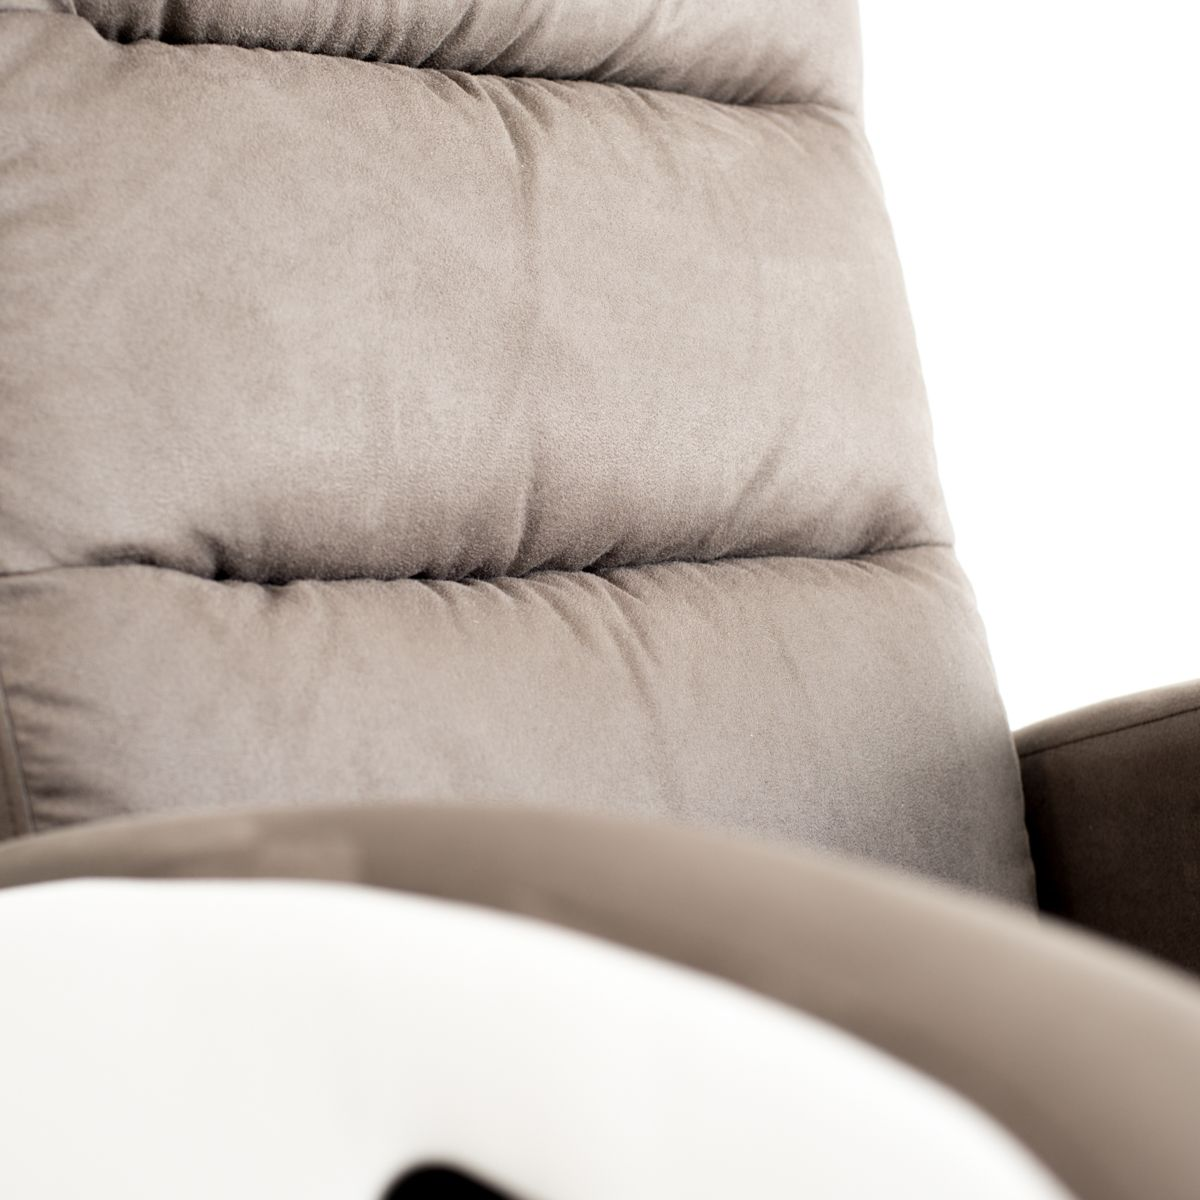 sillon relax reclinable ludwing piel alta calidad